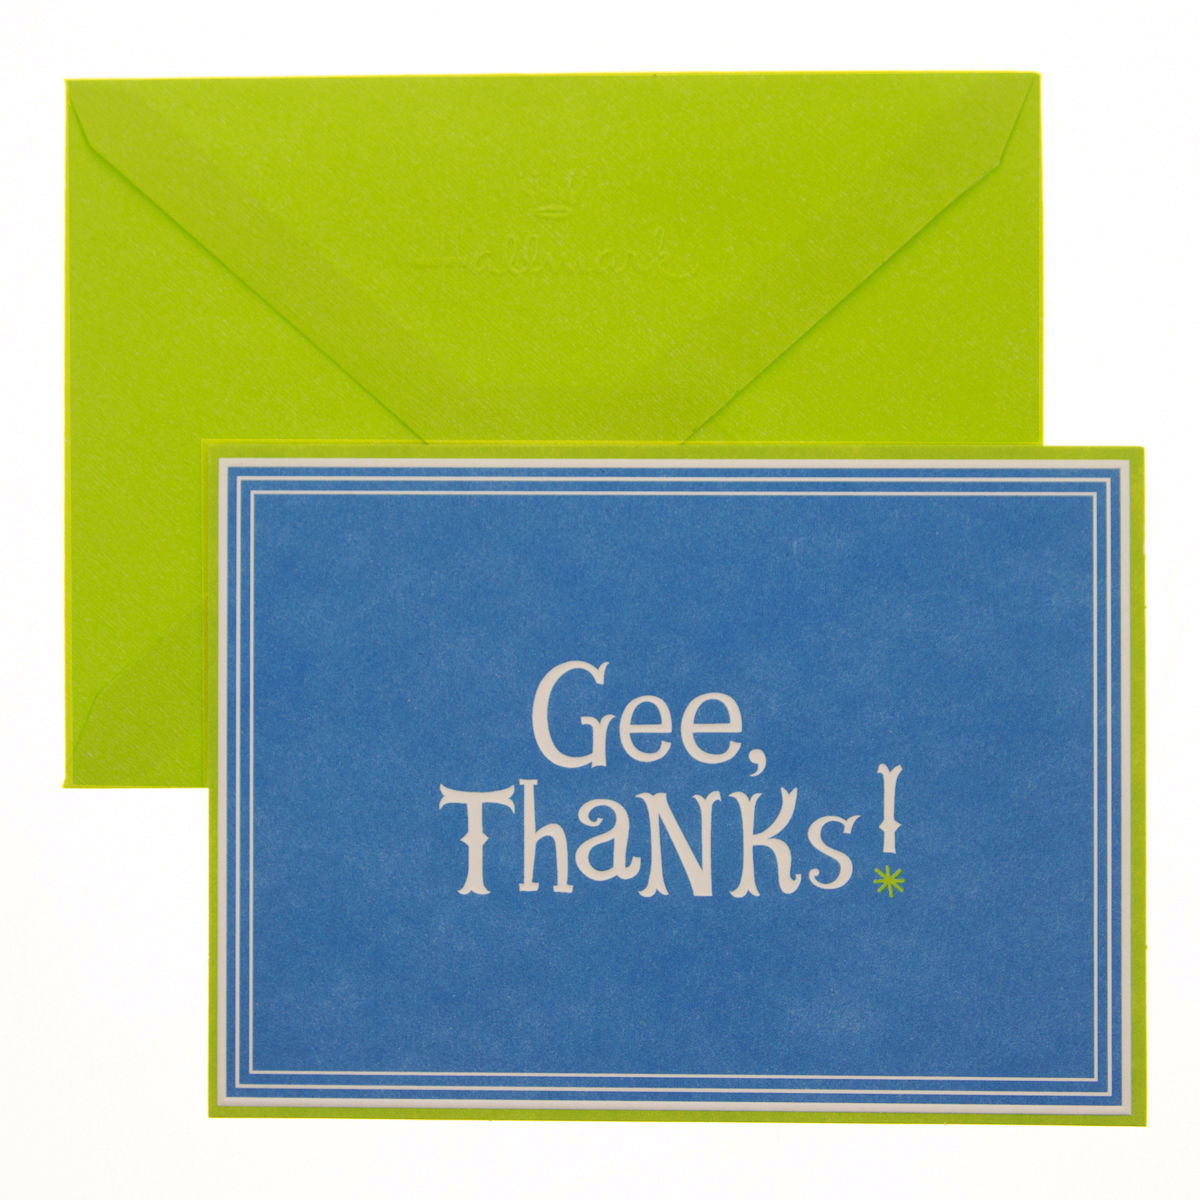 "50 Pack Hallmark 4"" x 5.5"" Blank Inside Thank You Cards With Envelopes Bulk Set Gee Thanks"